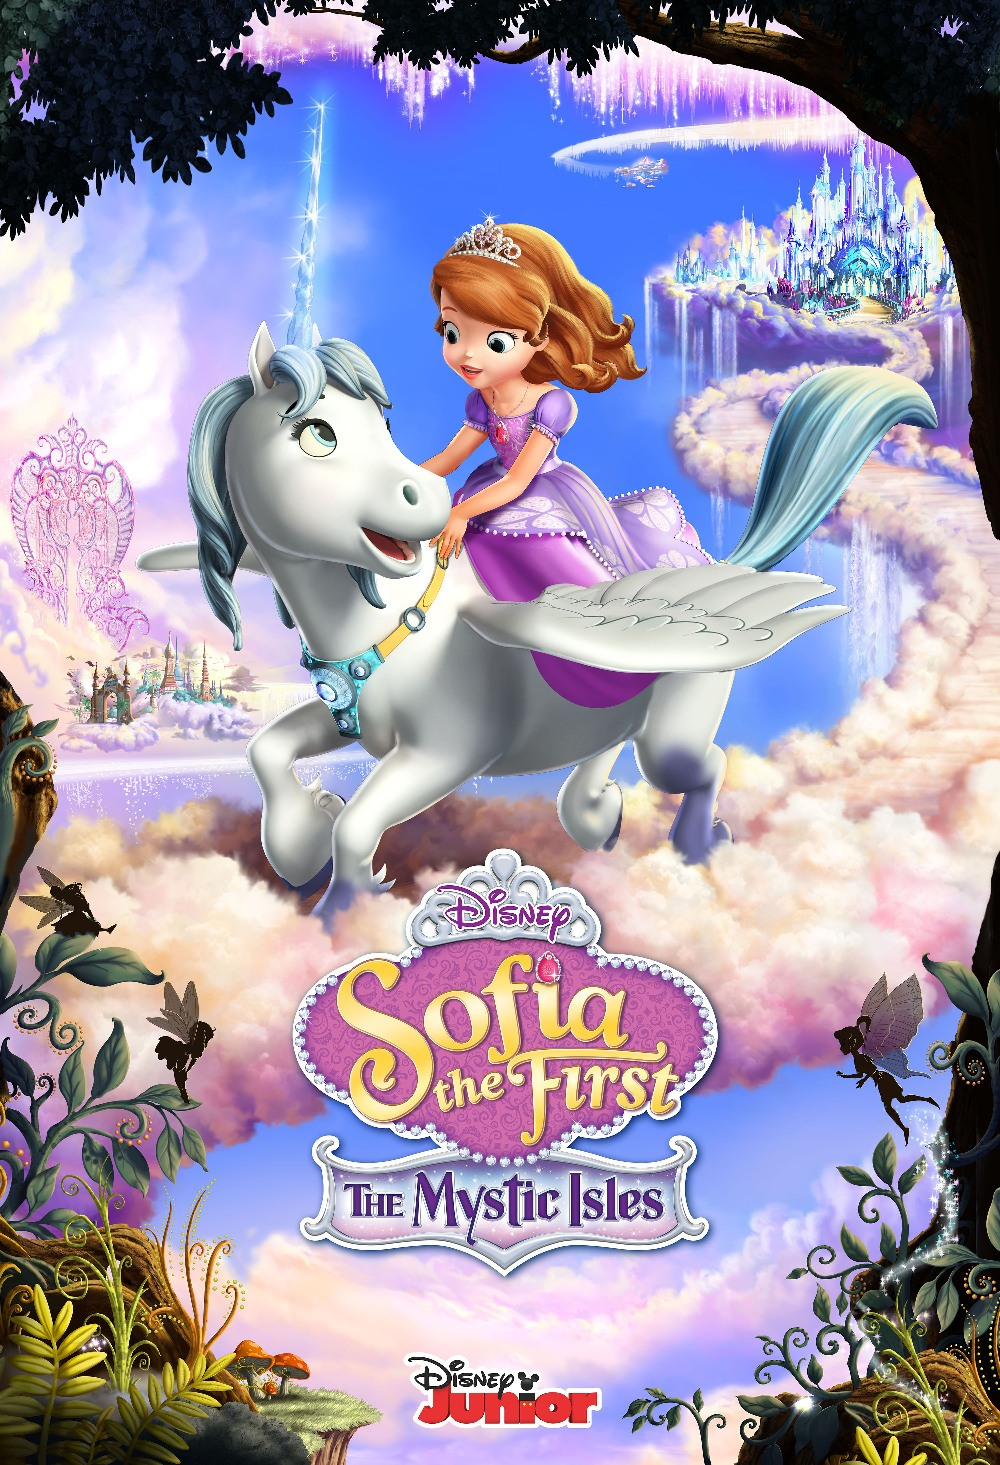 Sofia The First The Mystic Isles On Disney Junior